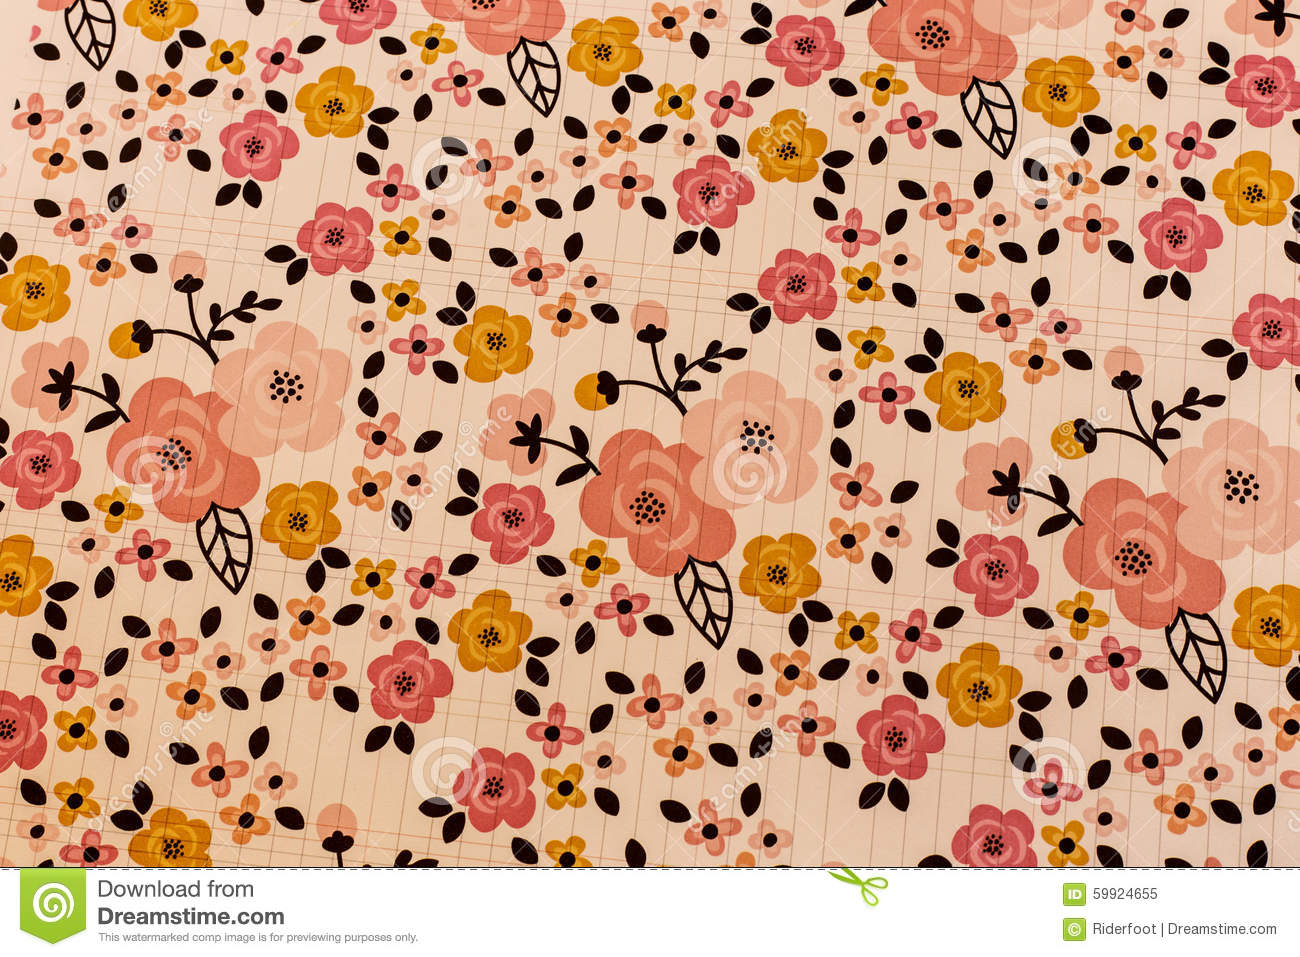 Scrapbook paper as wallpaper - Background Flowers Paper Pattern Scrapbook Wallpaper